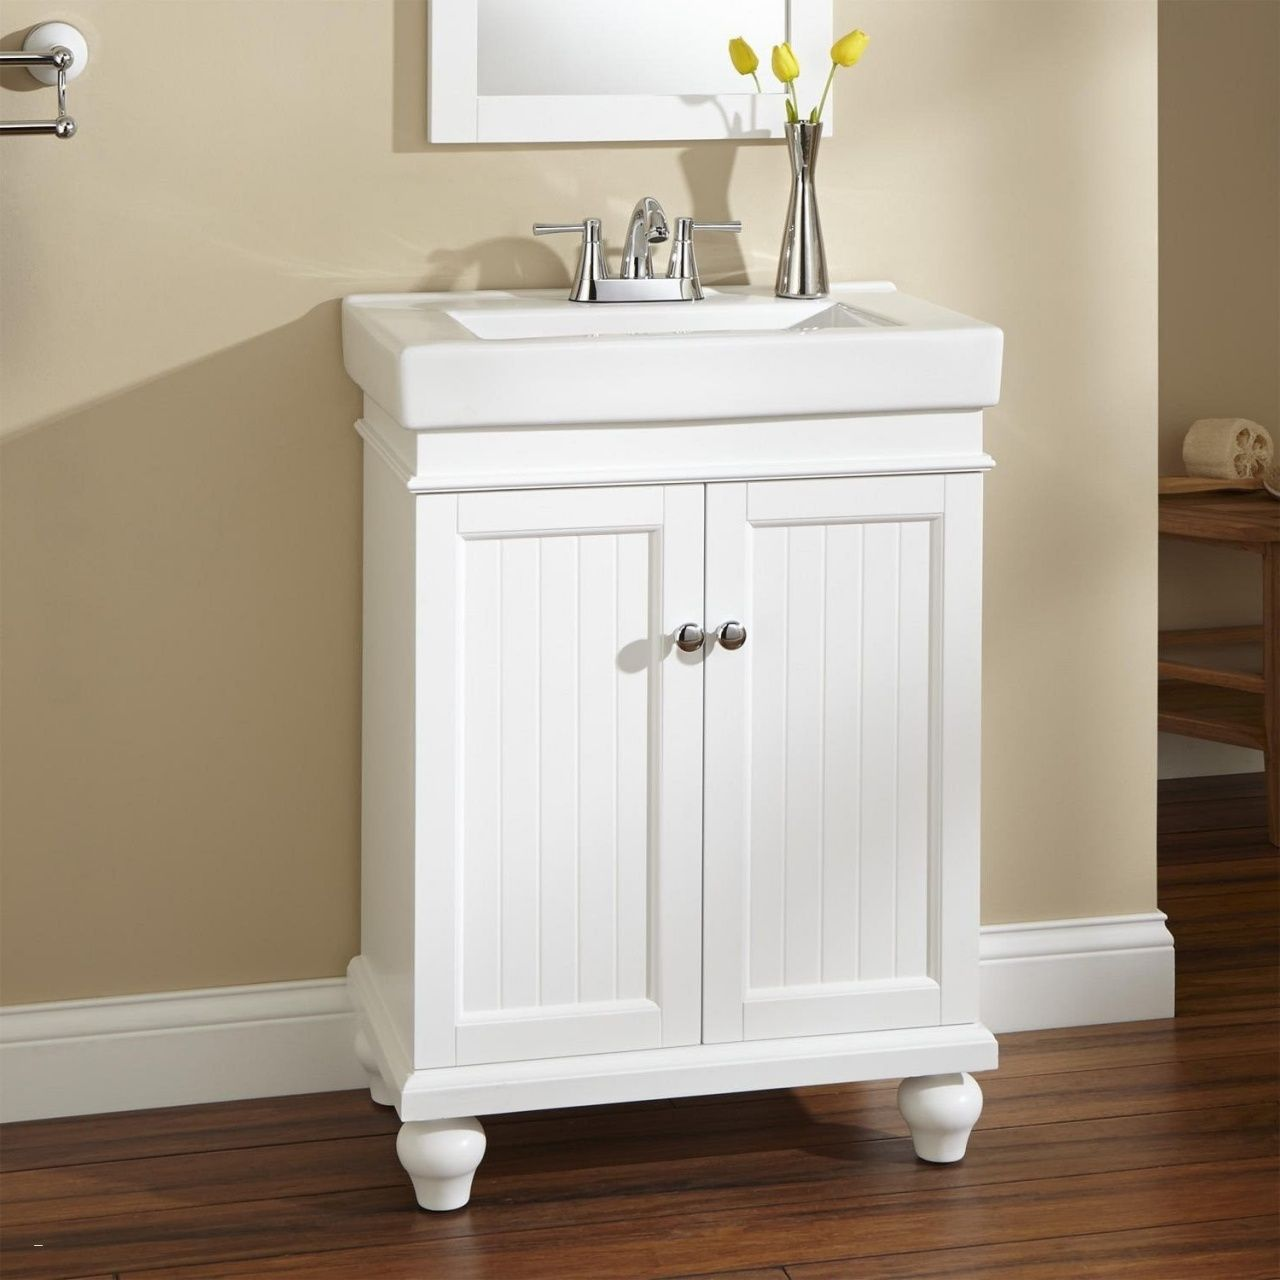 16 Inch Deep Bathroom Vanities Bathroom Vanities Without Tops